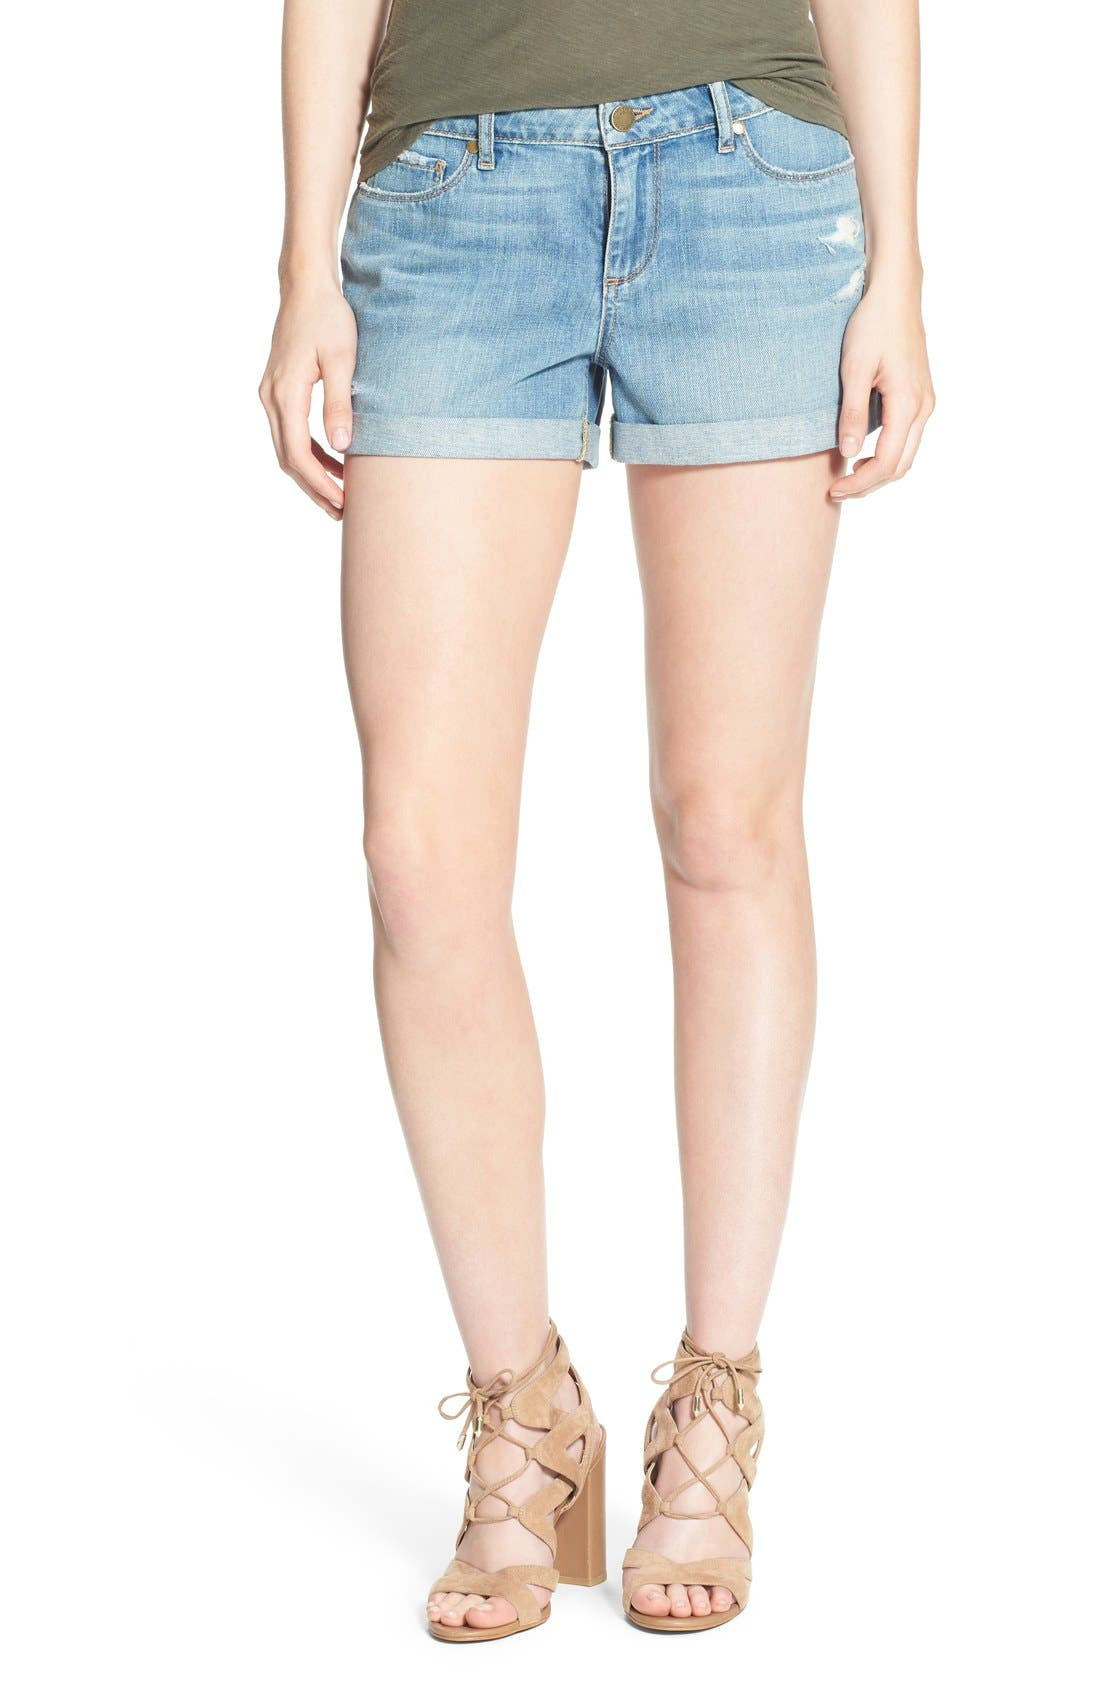 Alternate Image 1 Selected - PAIGE 'Jimmy Jimmy' Denim Shorts (Annora)